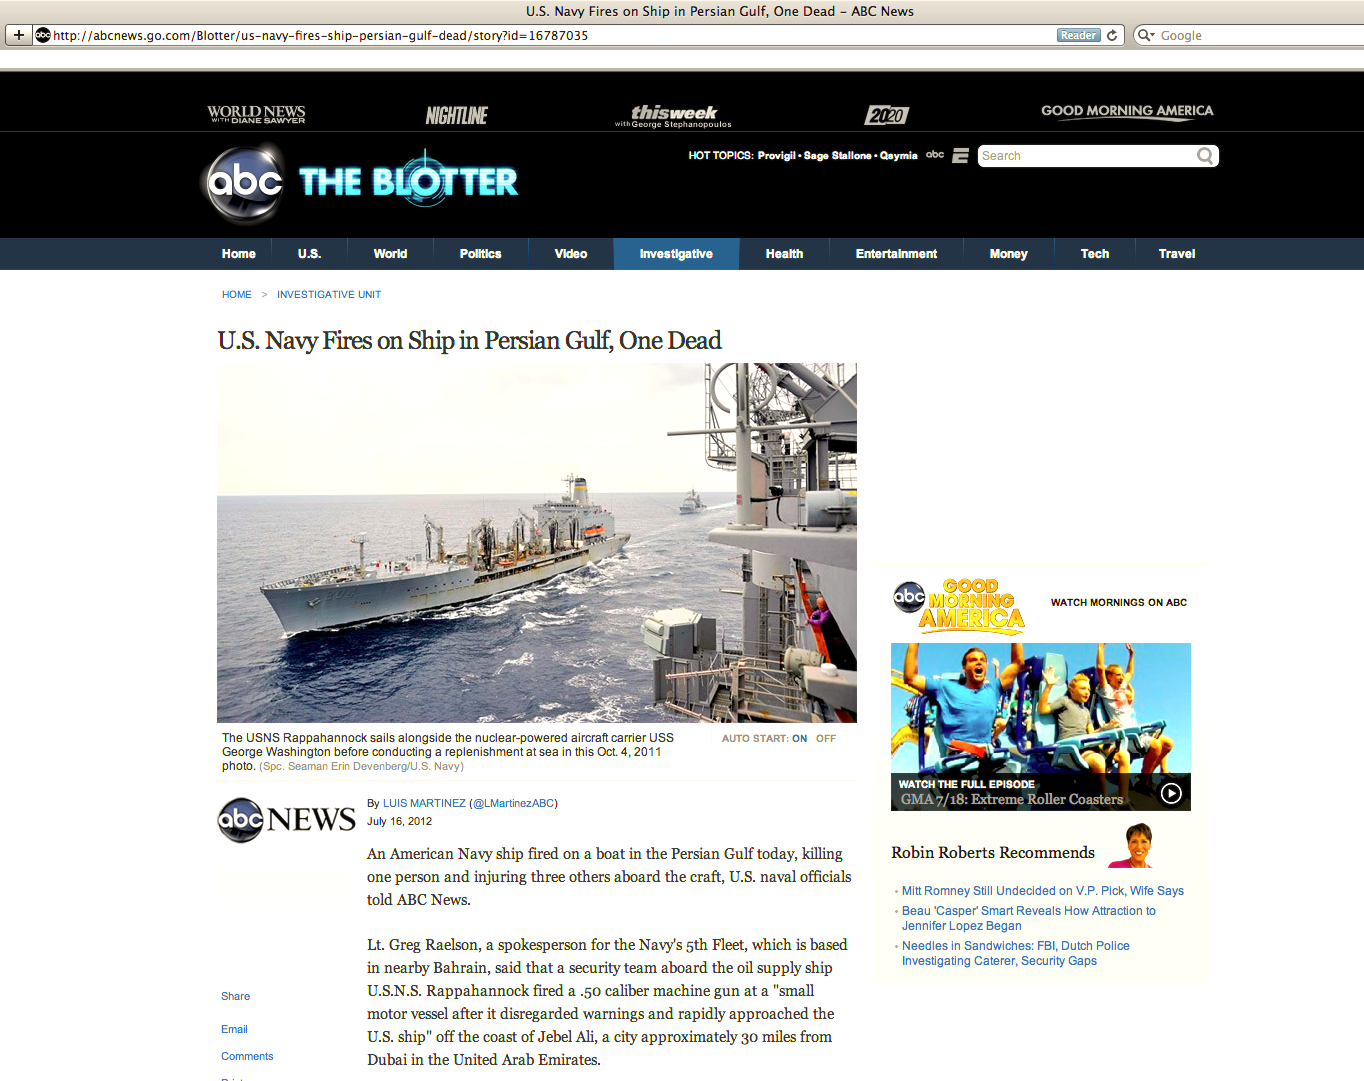 ABC_US_NAvy_Fires_on_Ship_in_Persian_Gulf.png